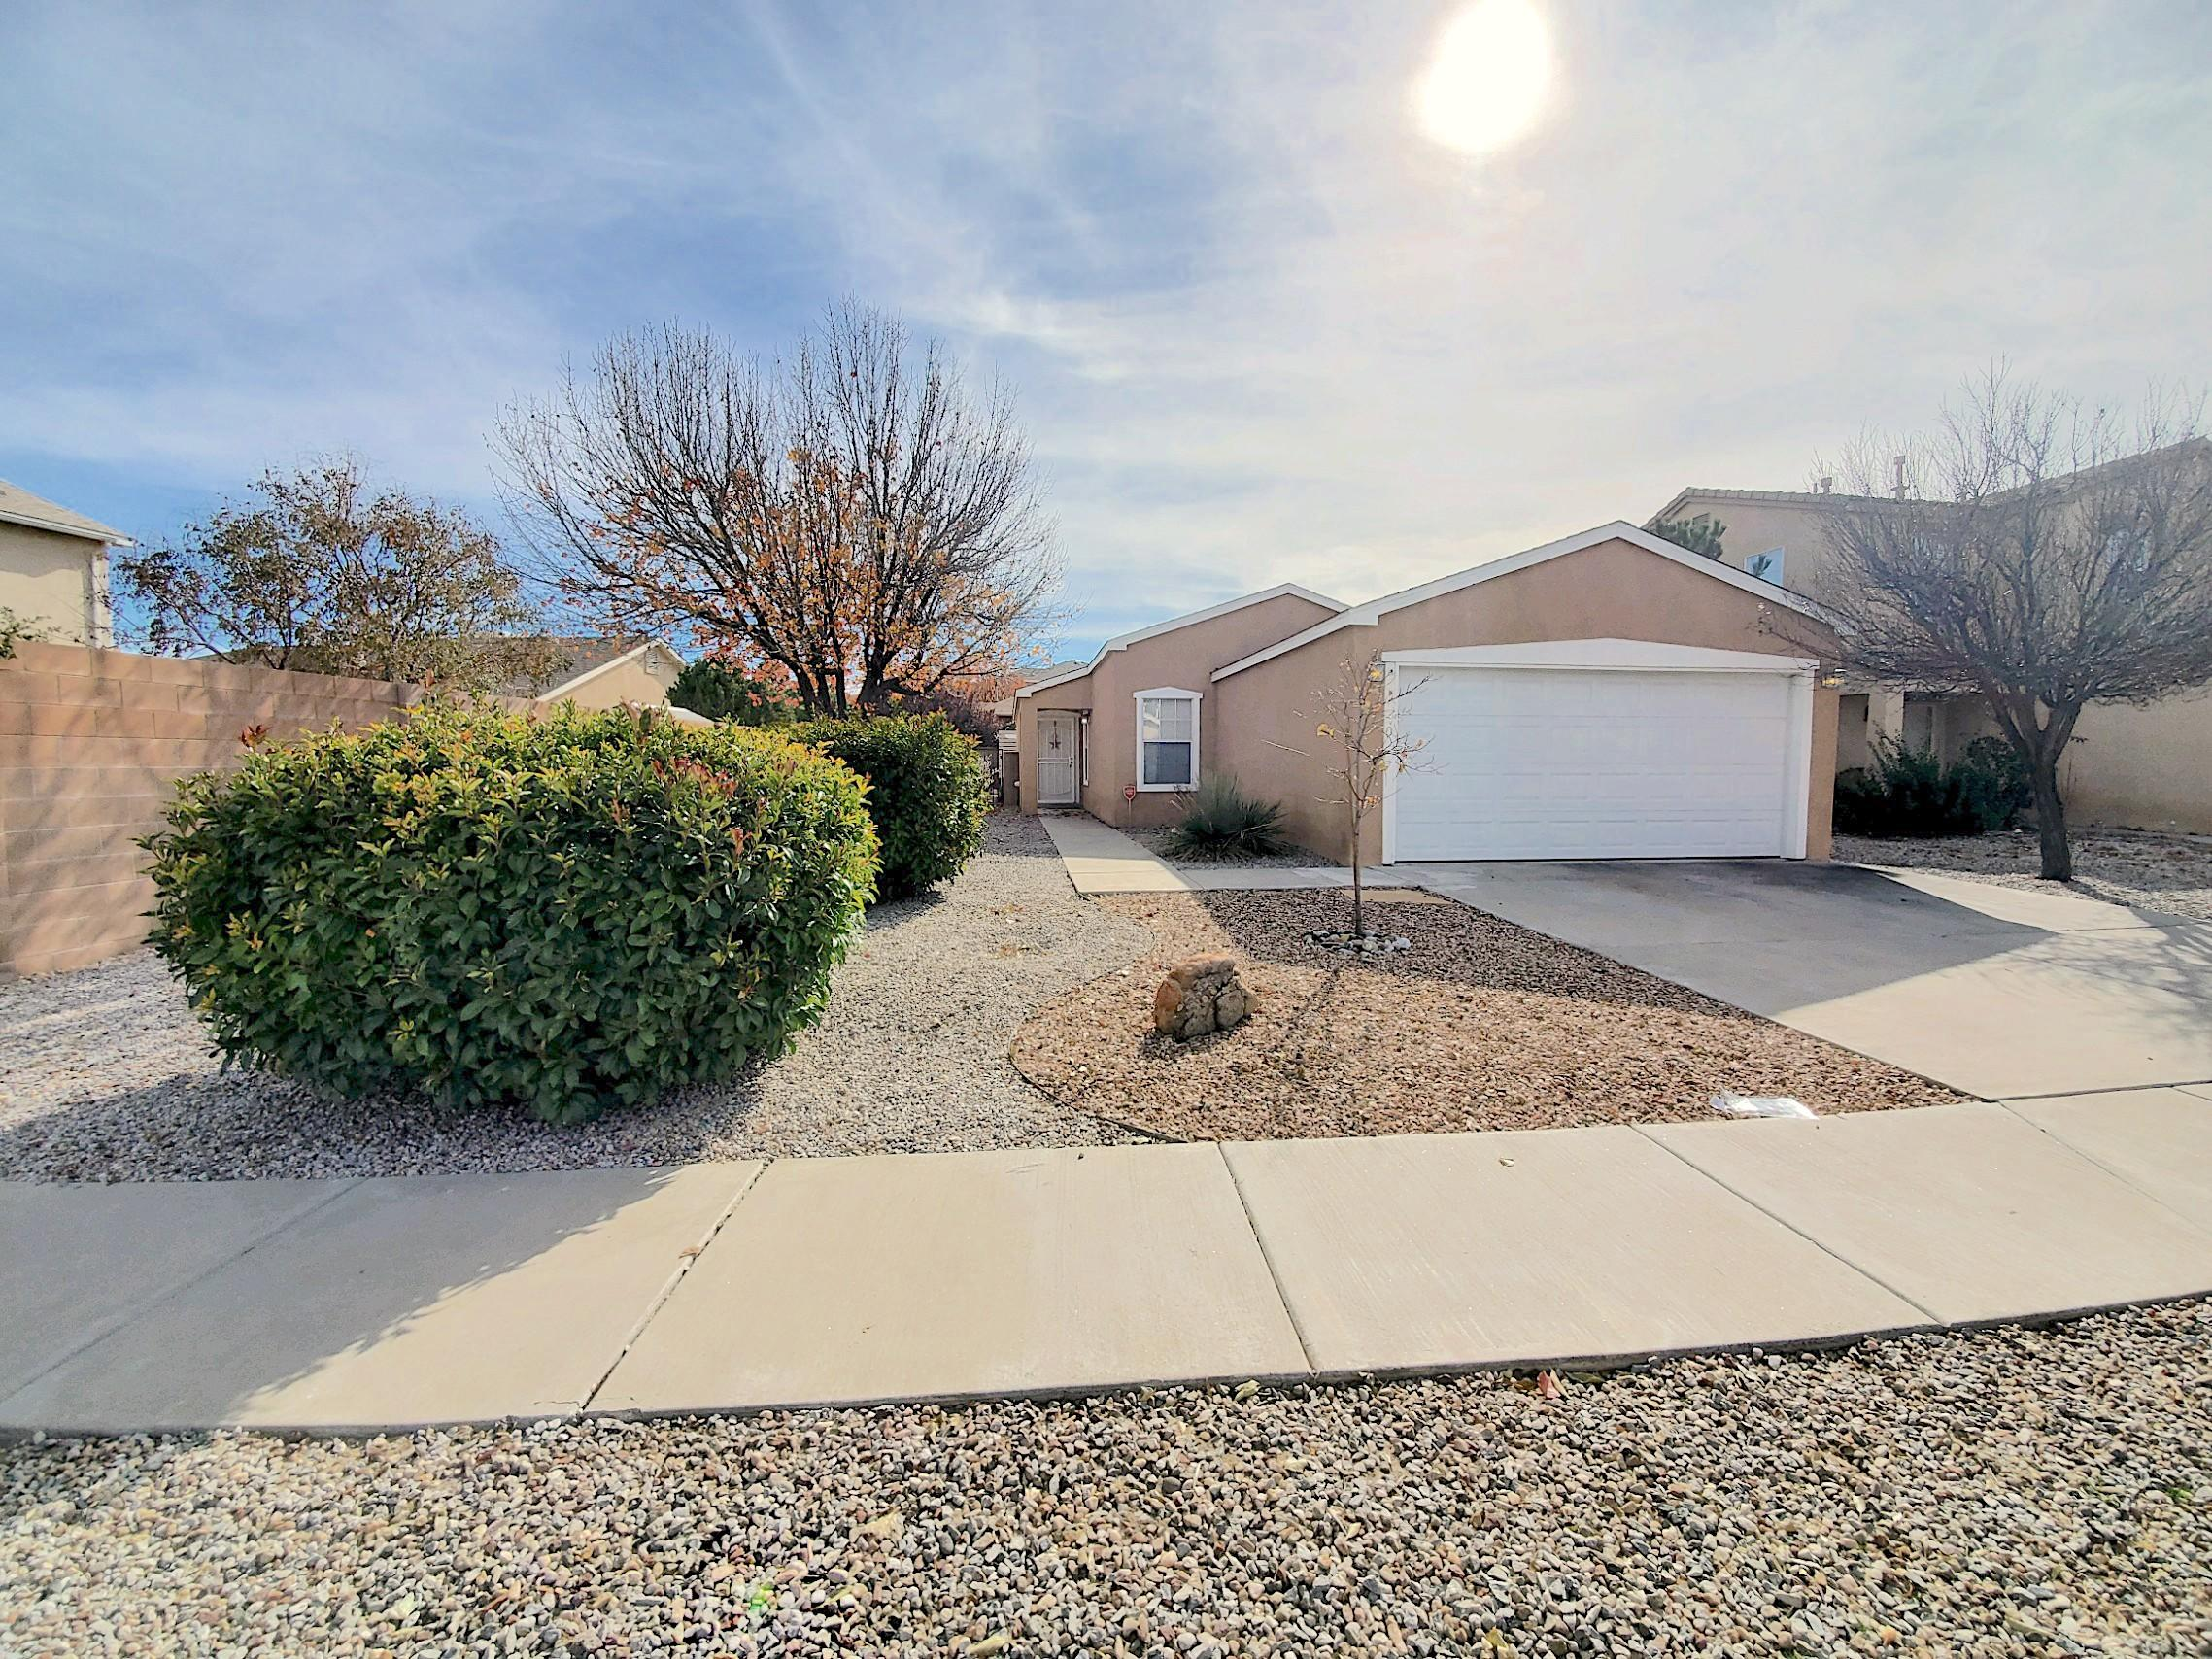 Cute home with an open floorplan. Separate office through double doors, and a refreshed backyard.